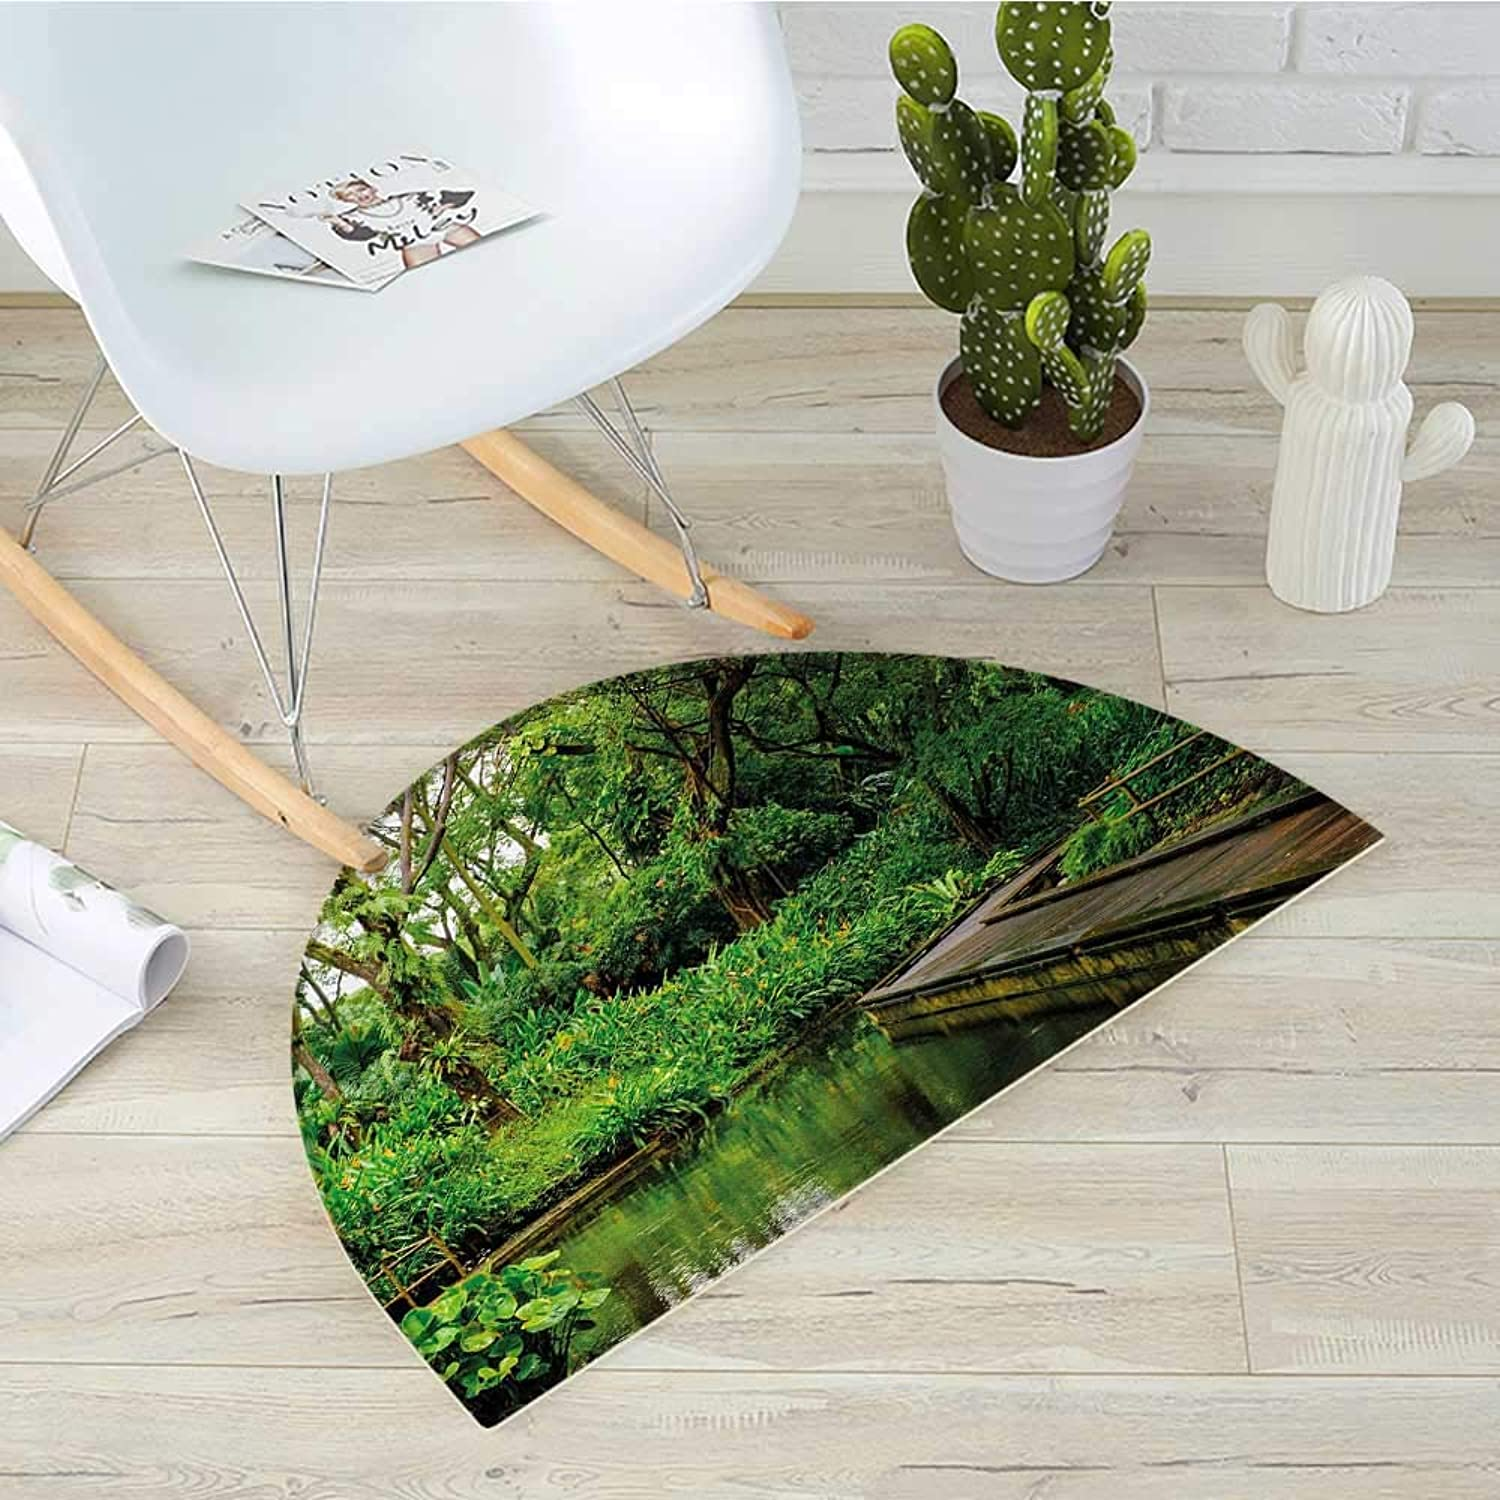 Jungle Semicircle Doormat Deep Forest with Wooden Pier and River Refreshing Exotic Nature Wild Image Halfmoon doormats H 39.3  xD 59  Hunter Green Brown